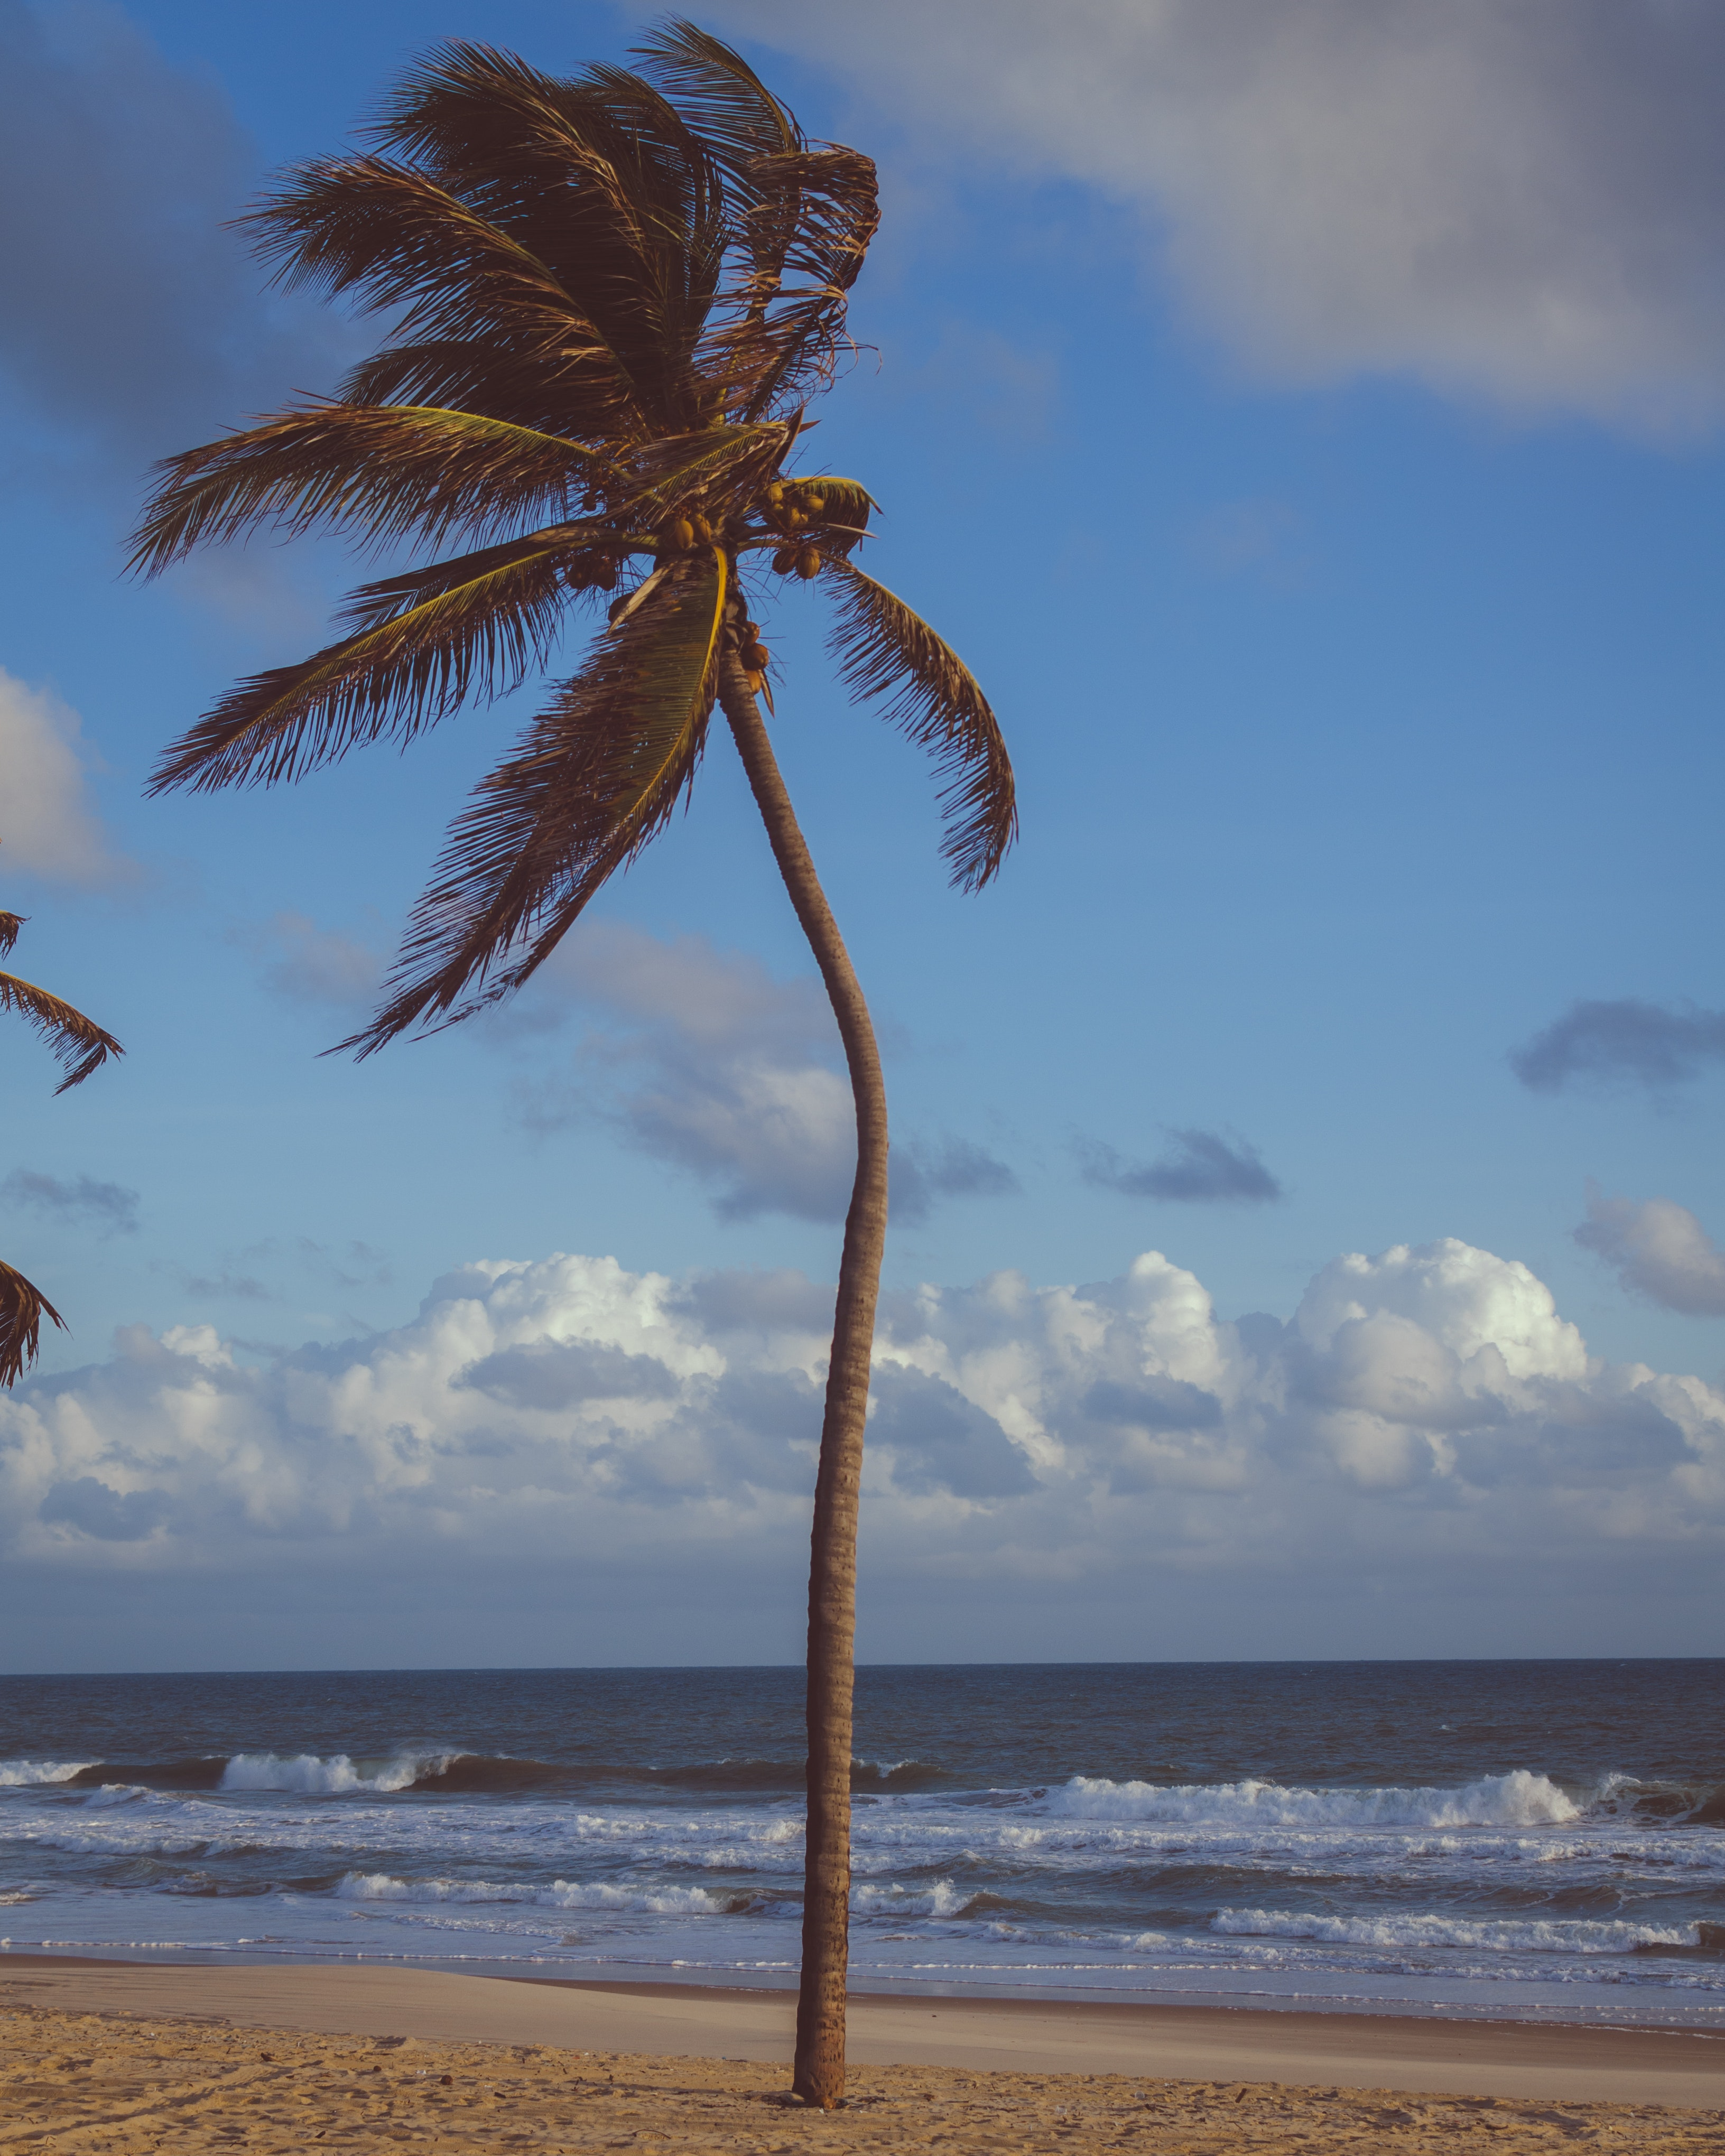 Coconut Palm Tree Near Sea, Beach, Sand, Water, Vacation, HQ Photo